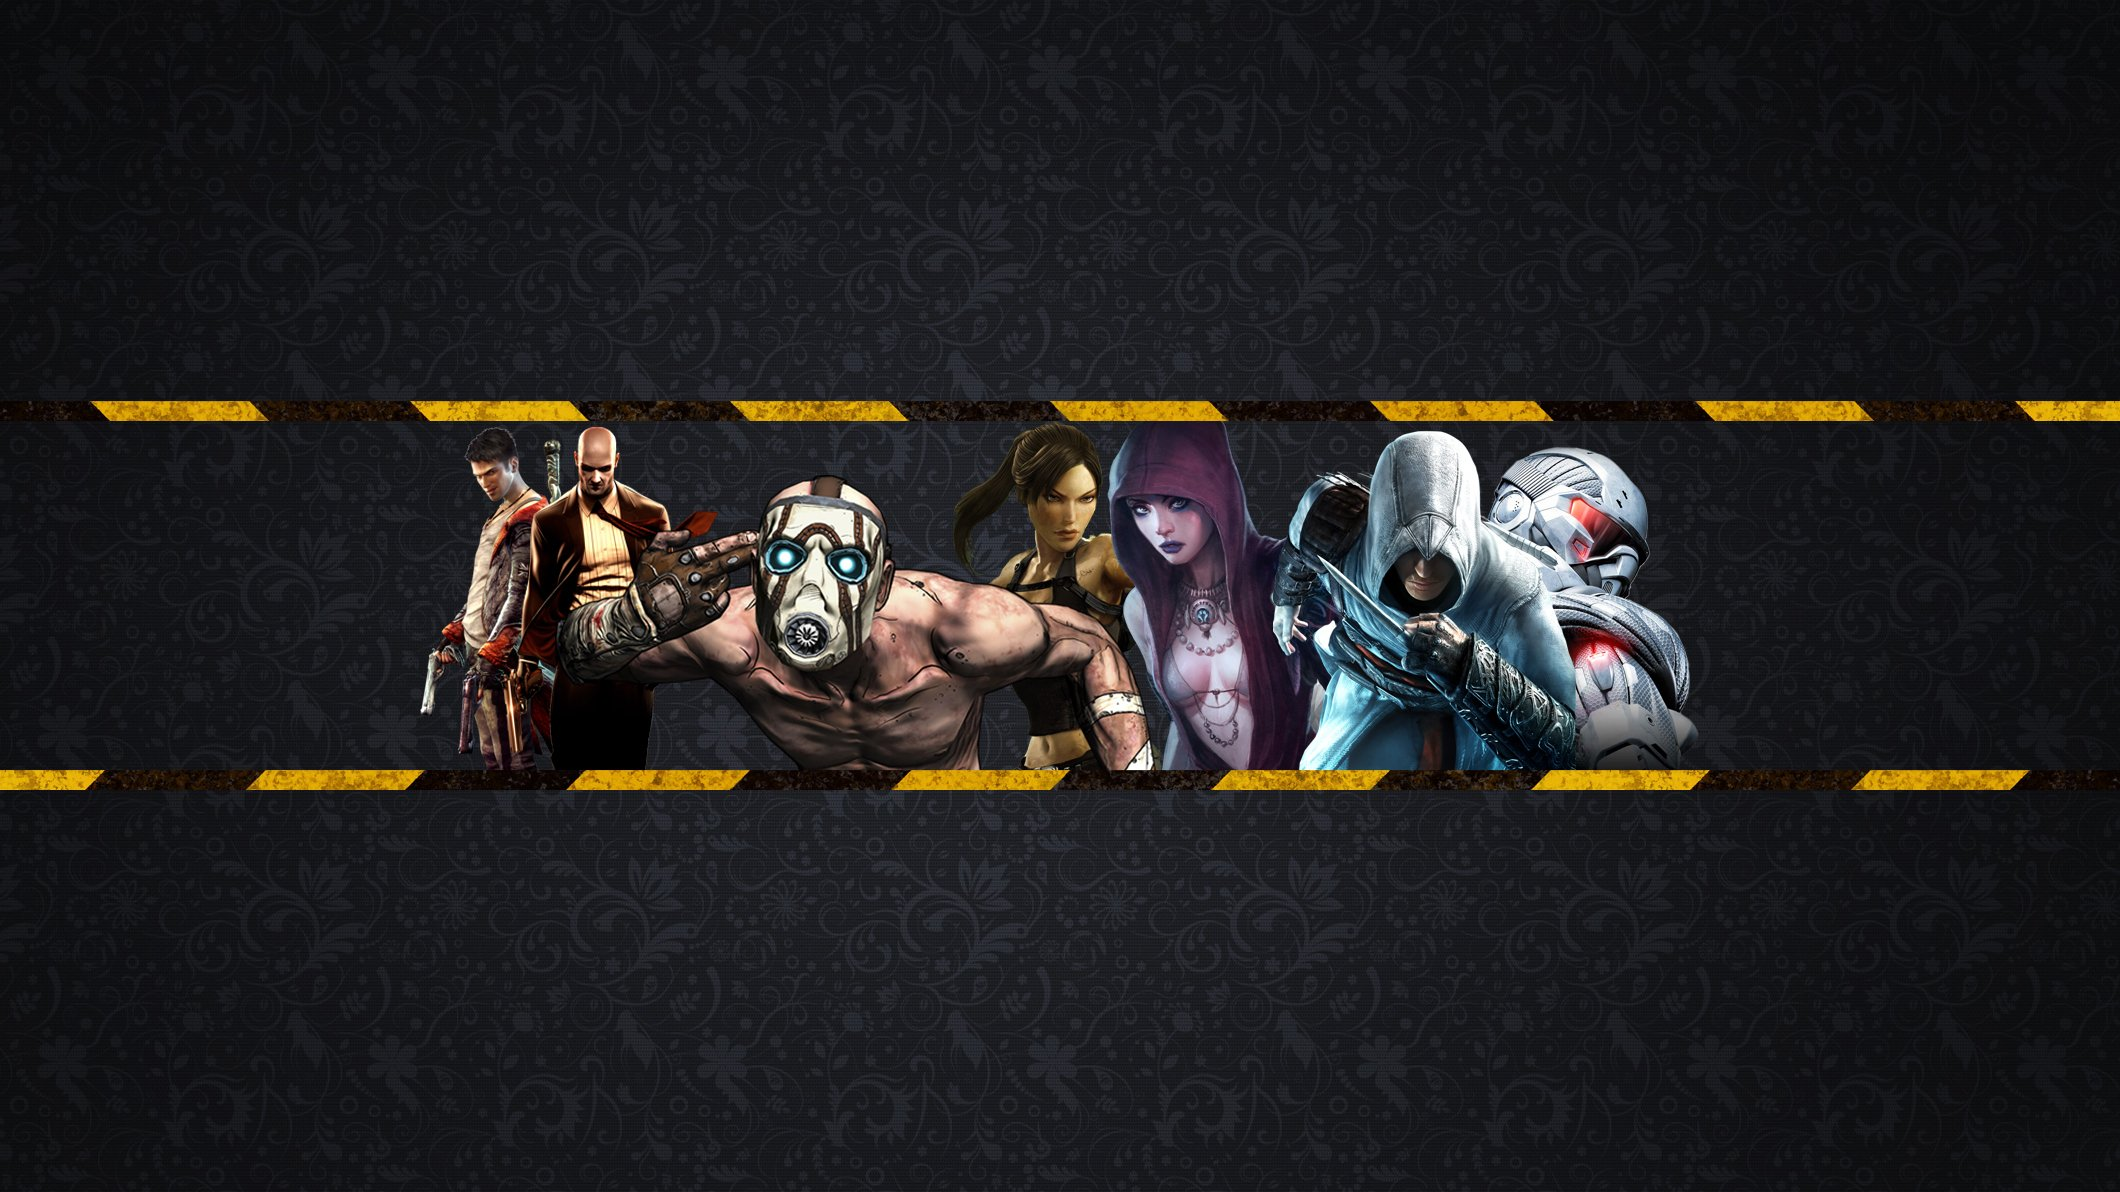 Gaming backgrounds for youtube banner